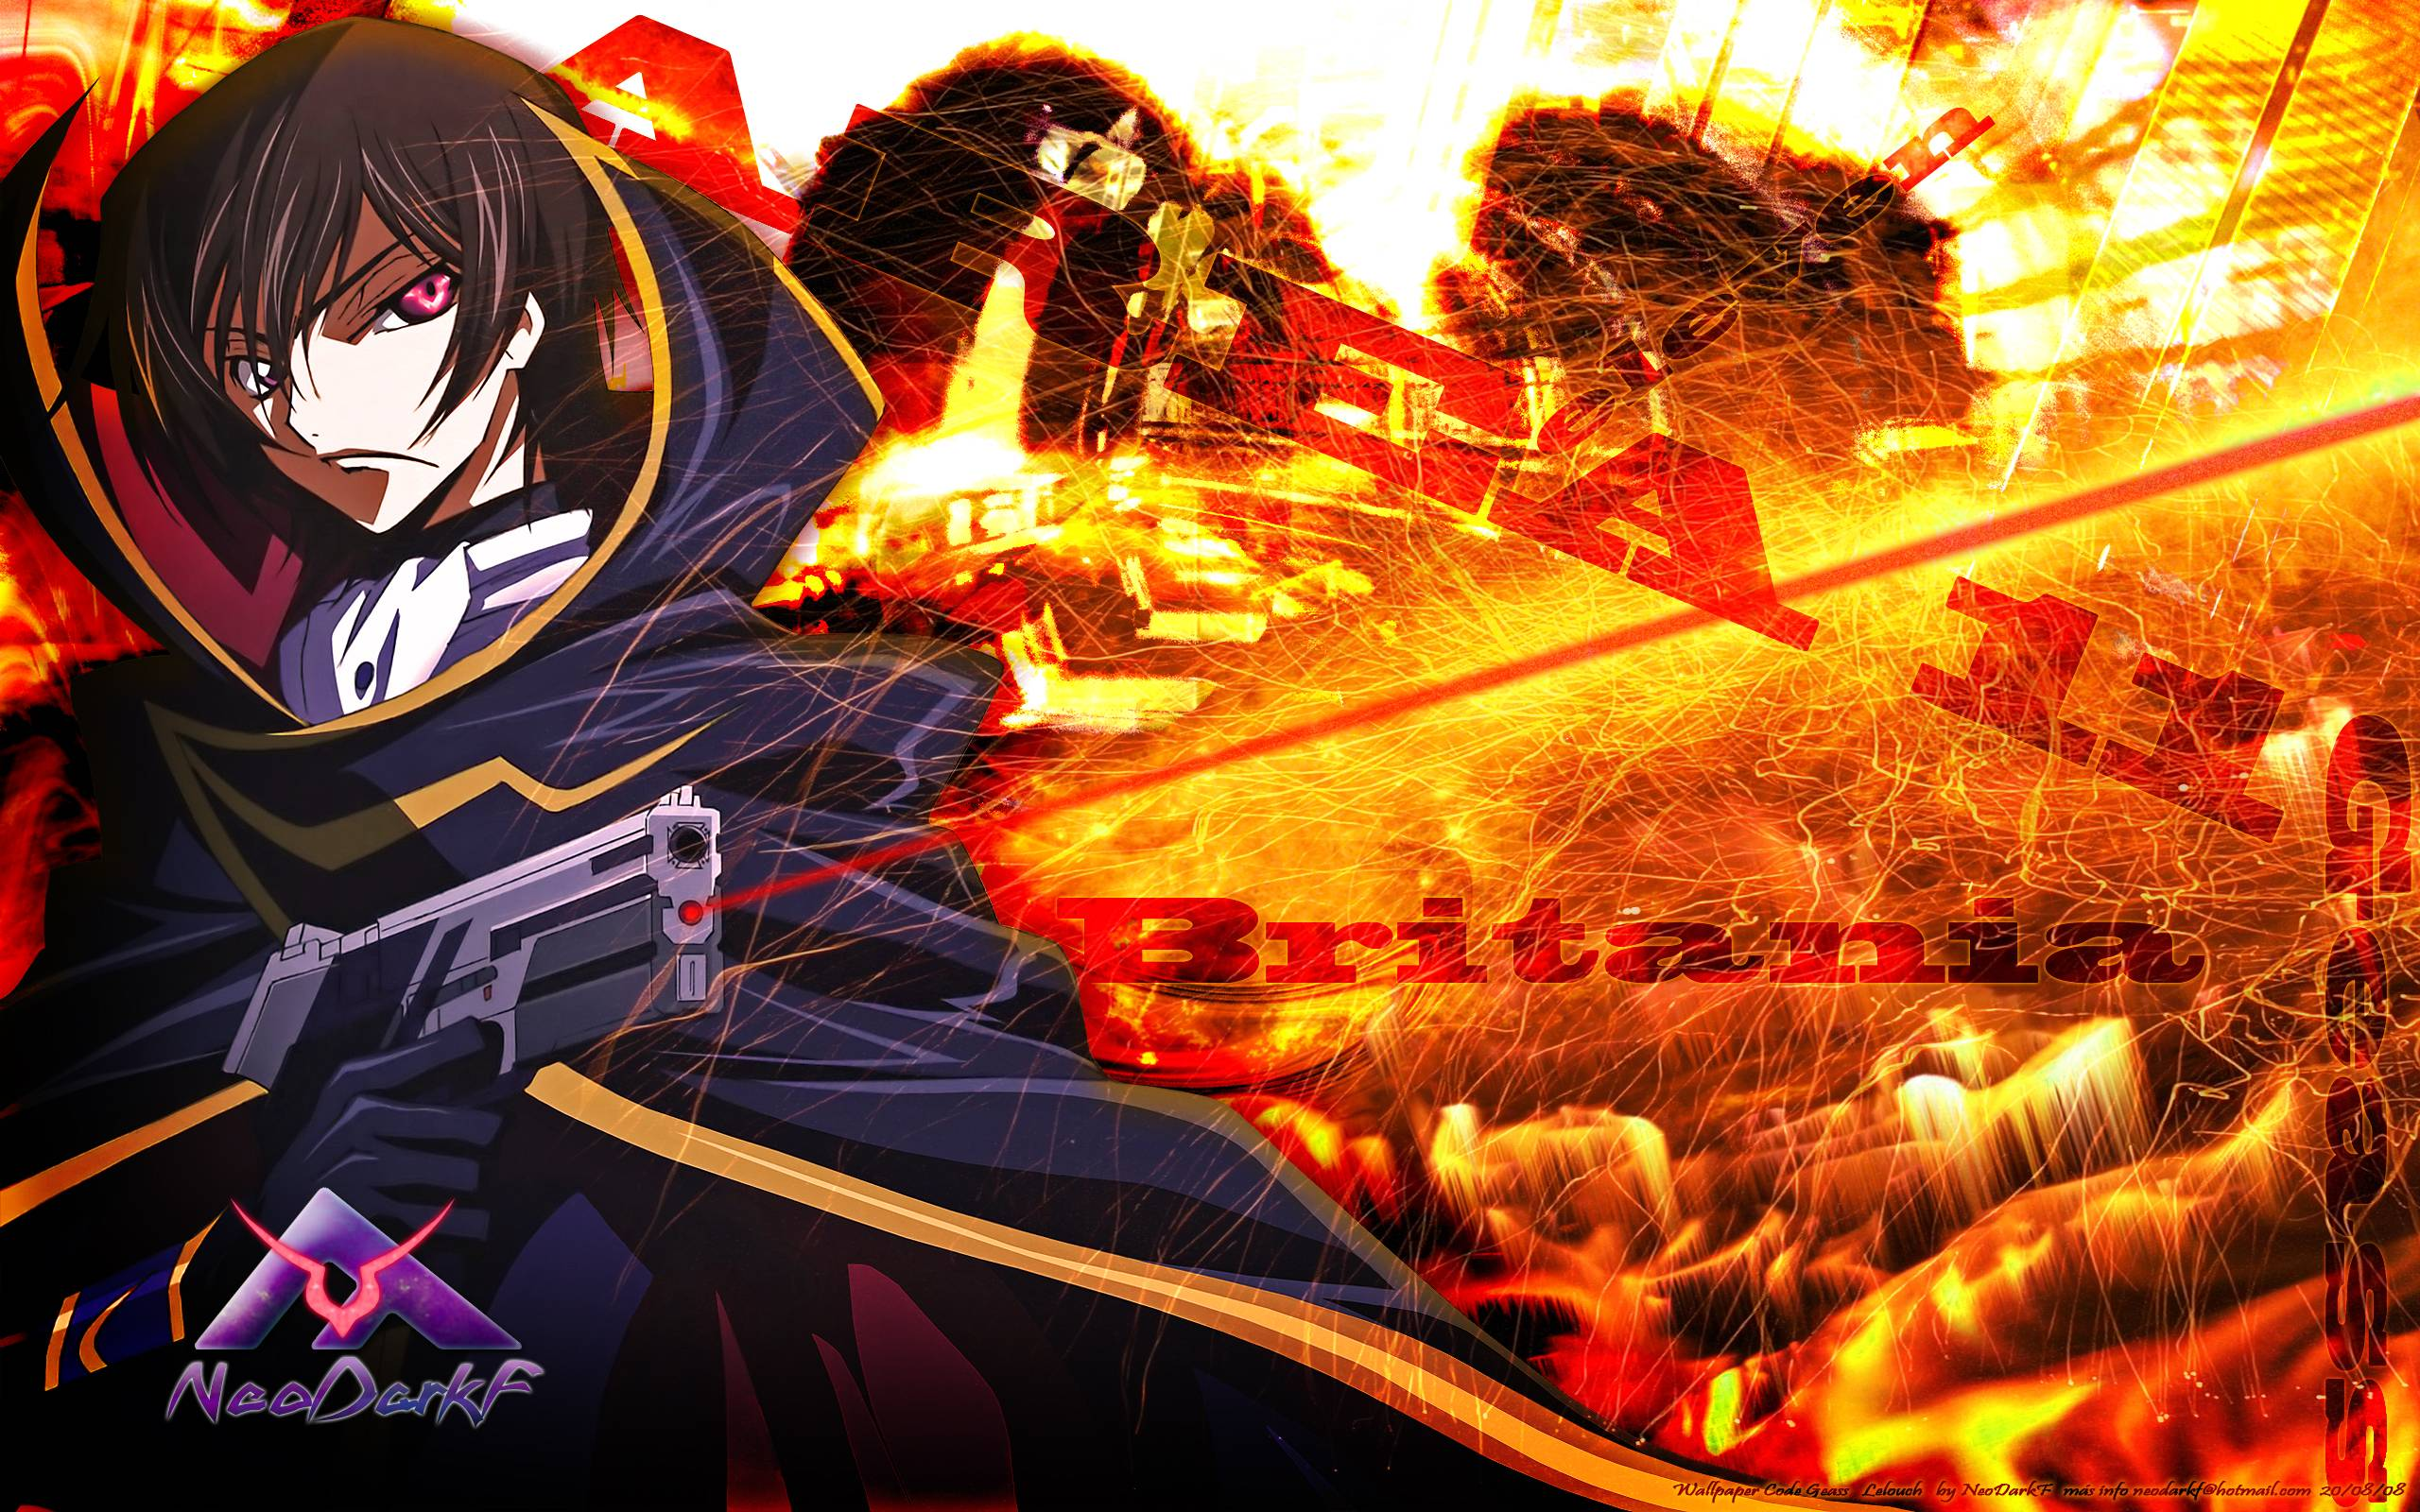 Download Code Geass Wallpapers 2560x1600